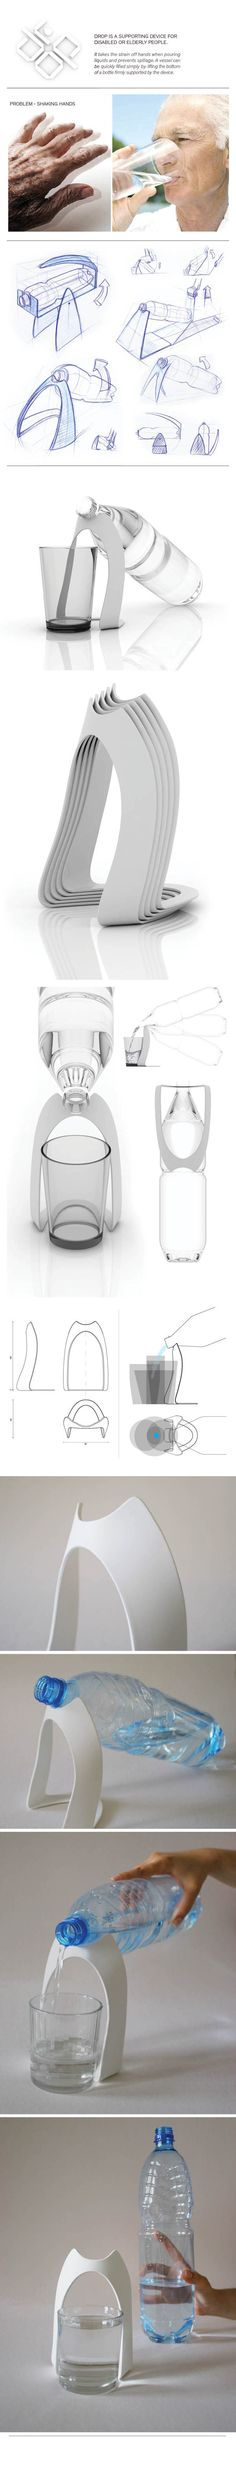 DROP - a supporting device for disabled people by Wiktoria Lenart, via Behance